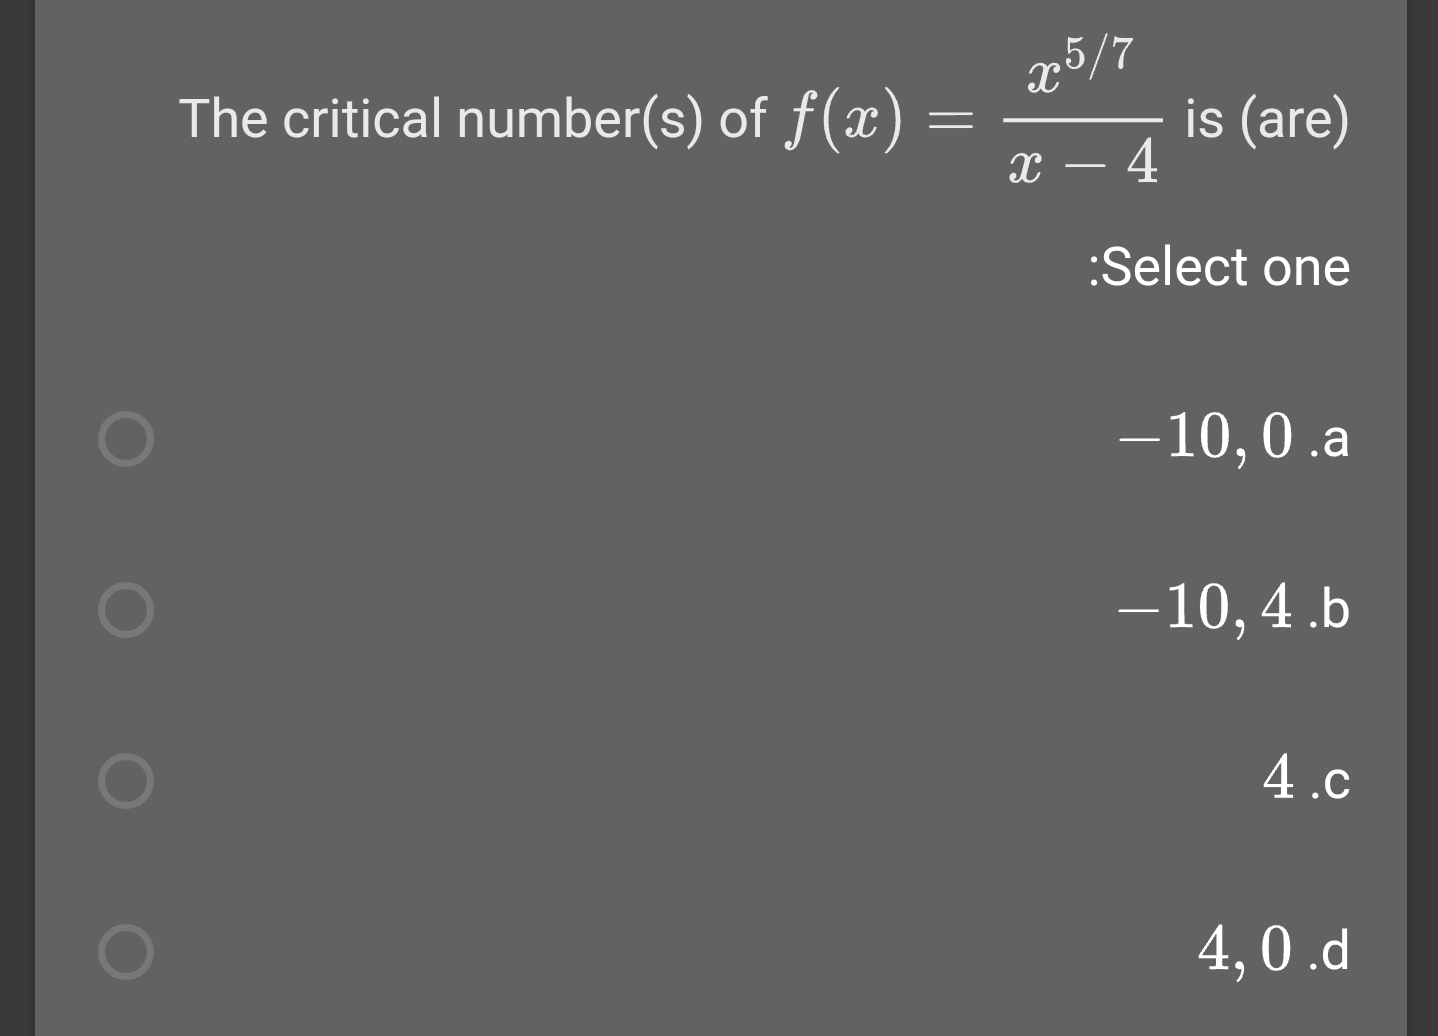 x5/7 is (are) - 4 The critical number(s) of f(x) :Select one -10,0 .a -10, 4 .b 4.c 4,0.d